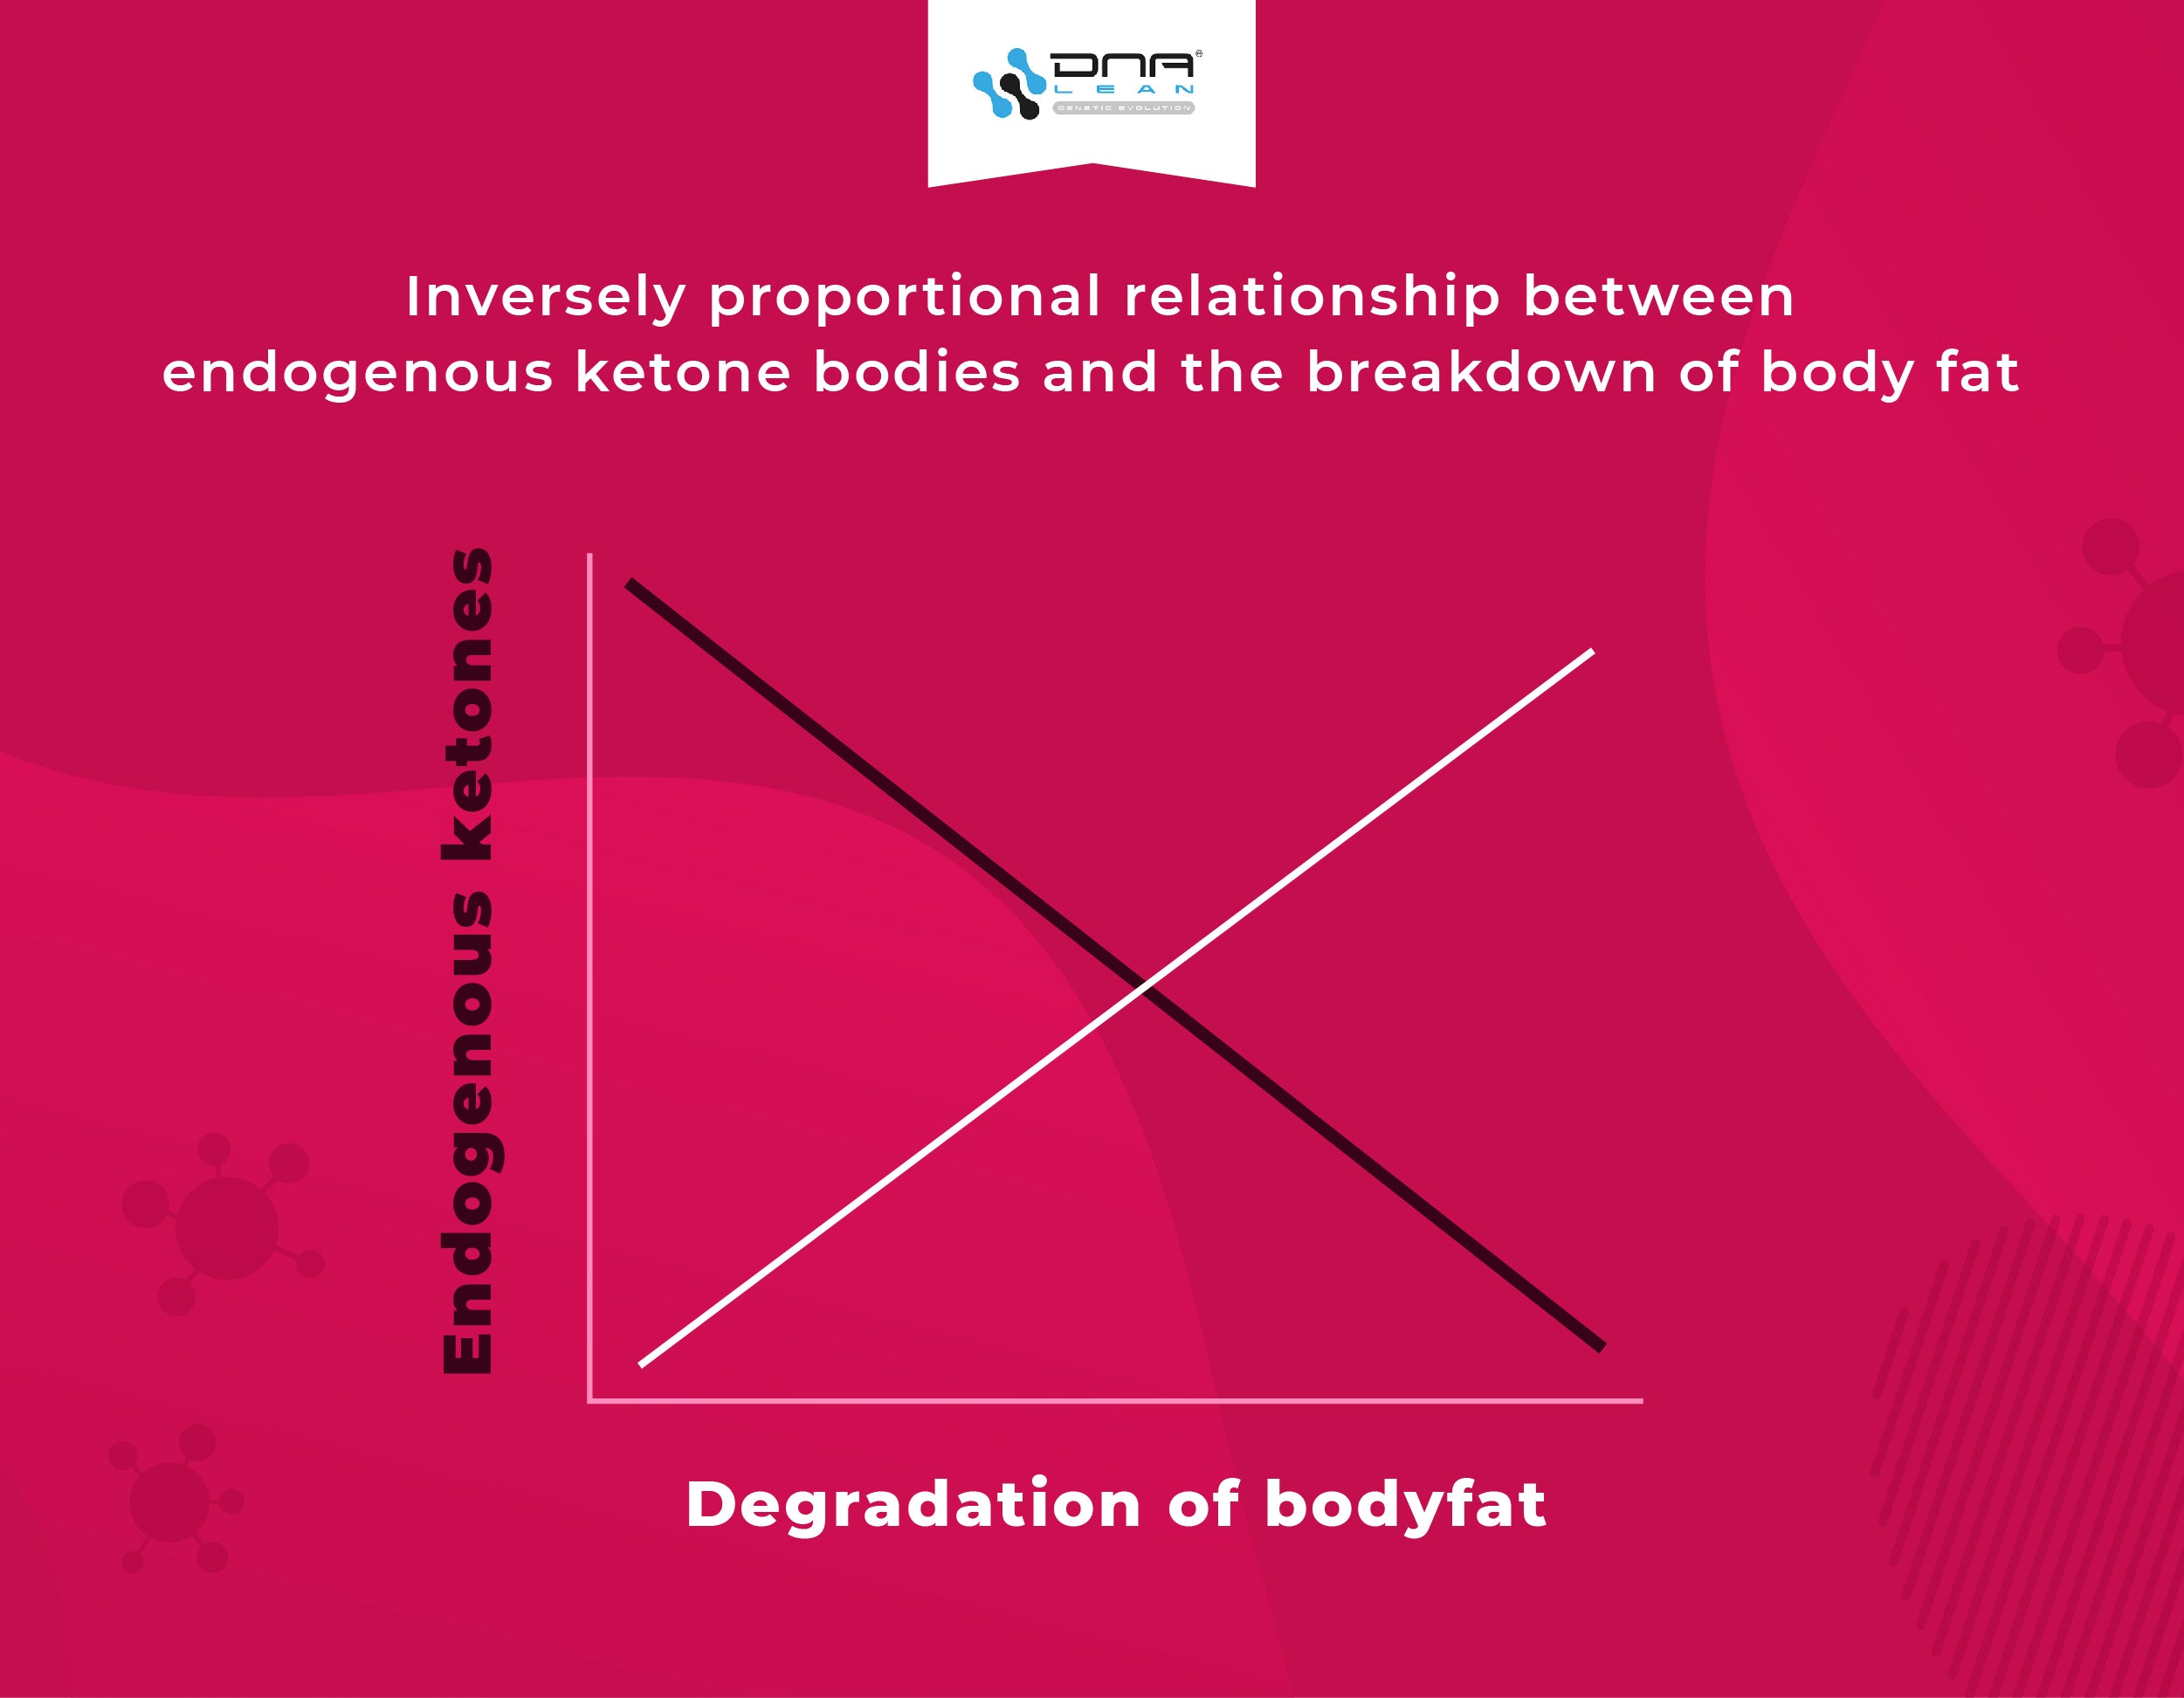 Inverse relationship between ketone bodies and the degredation of body fat mass